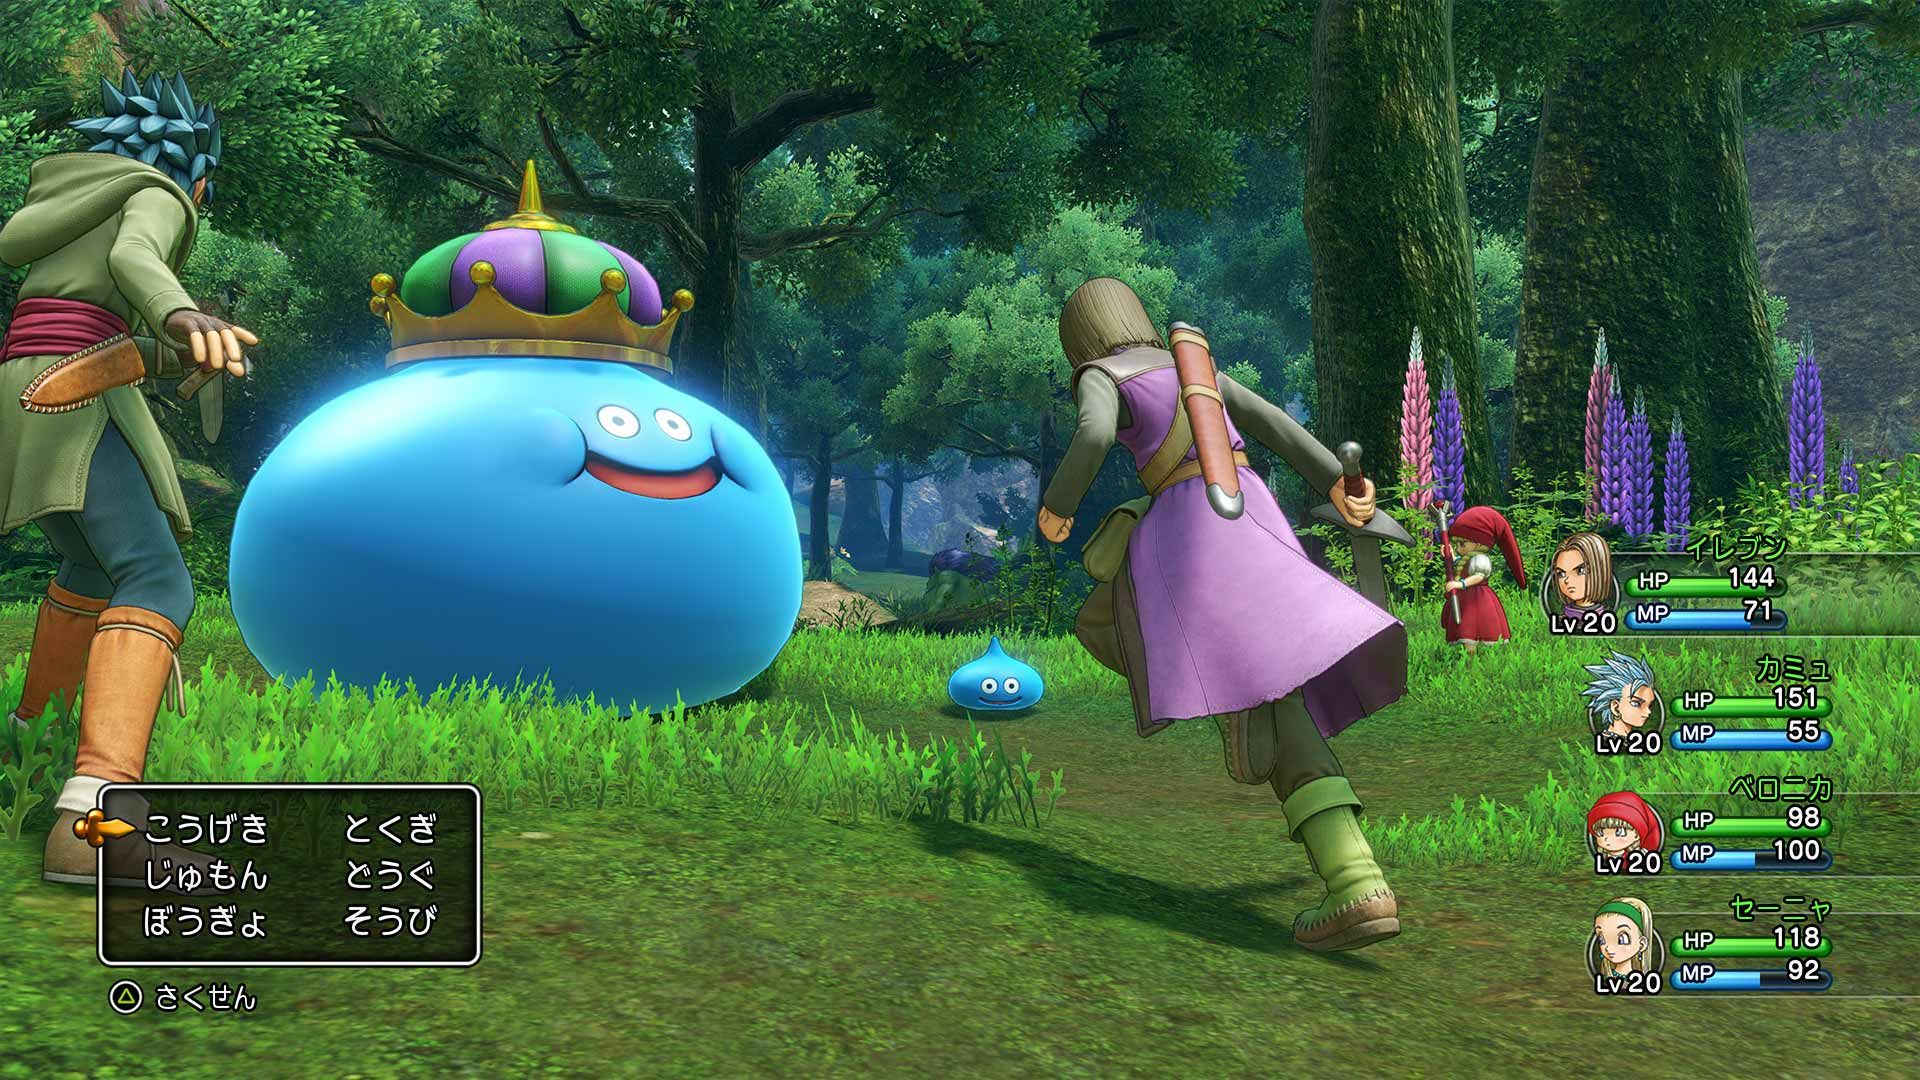 Dragon Quest Xi Gameplay And 1080p Screenshots Square Enix Claims